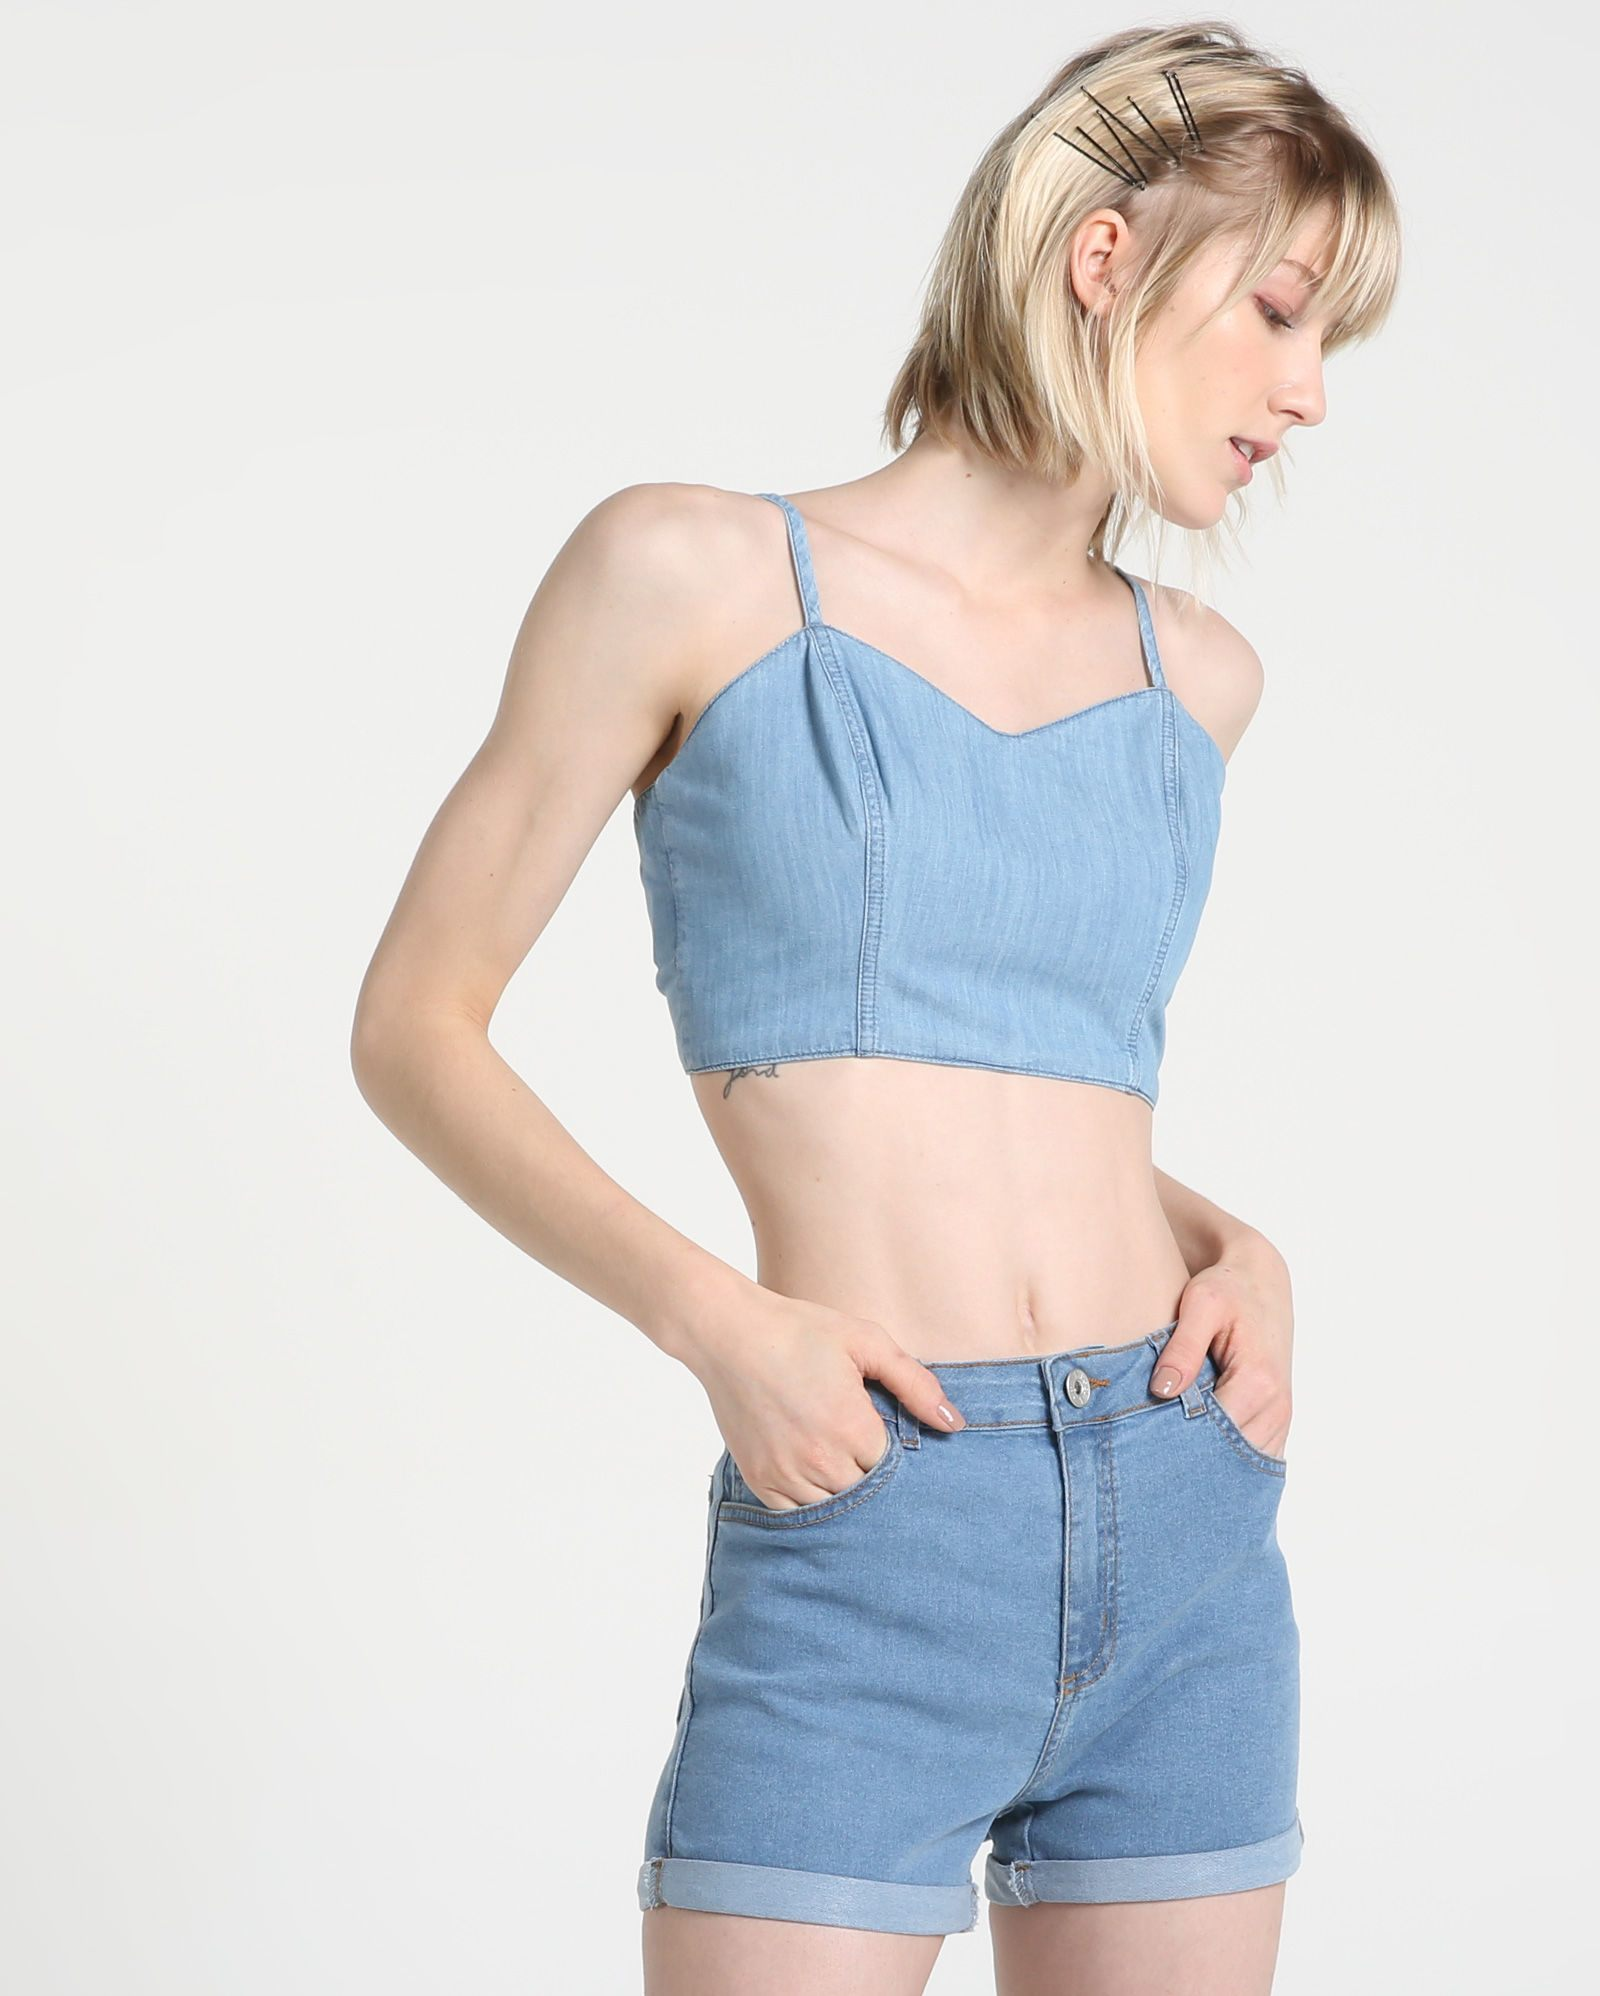 Cropped jeans shorts